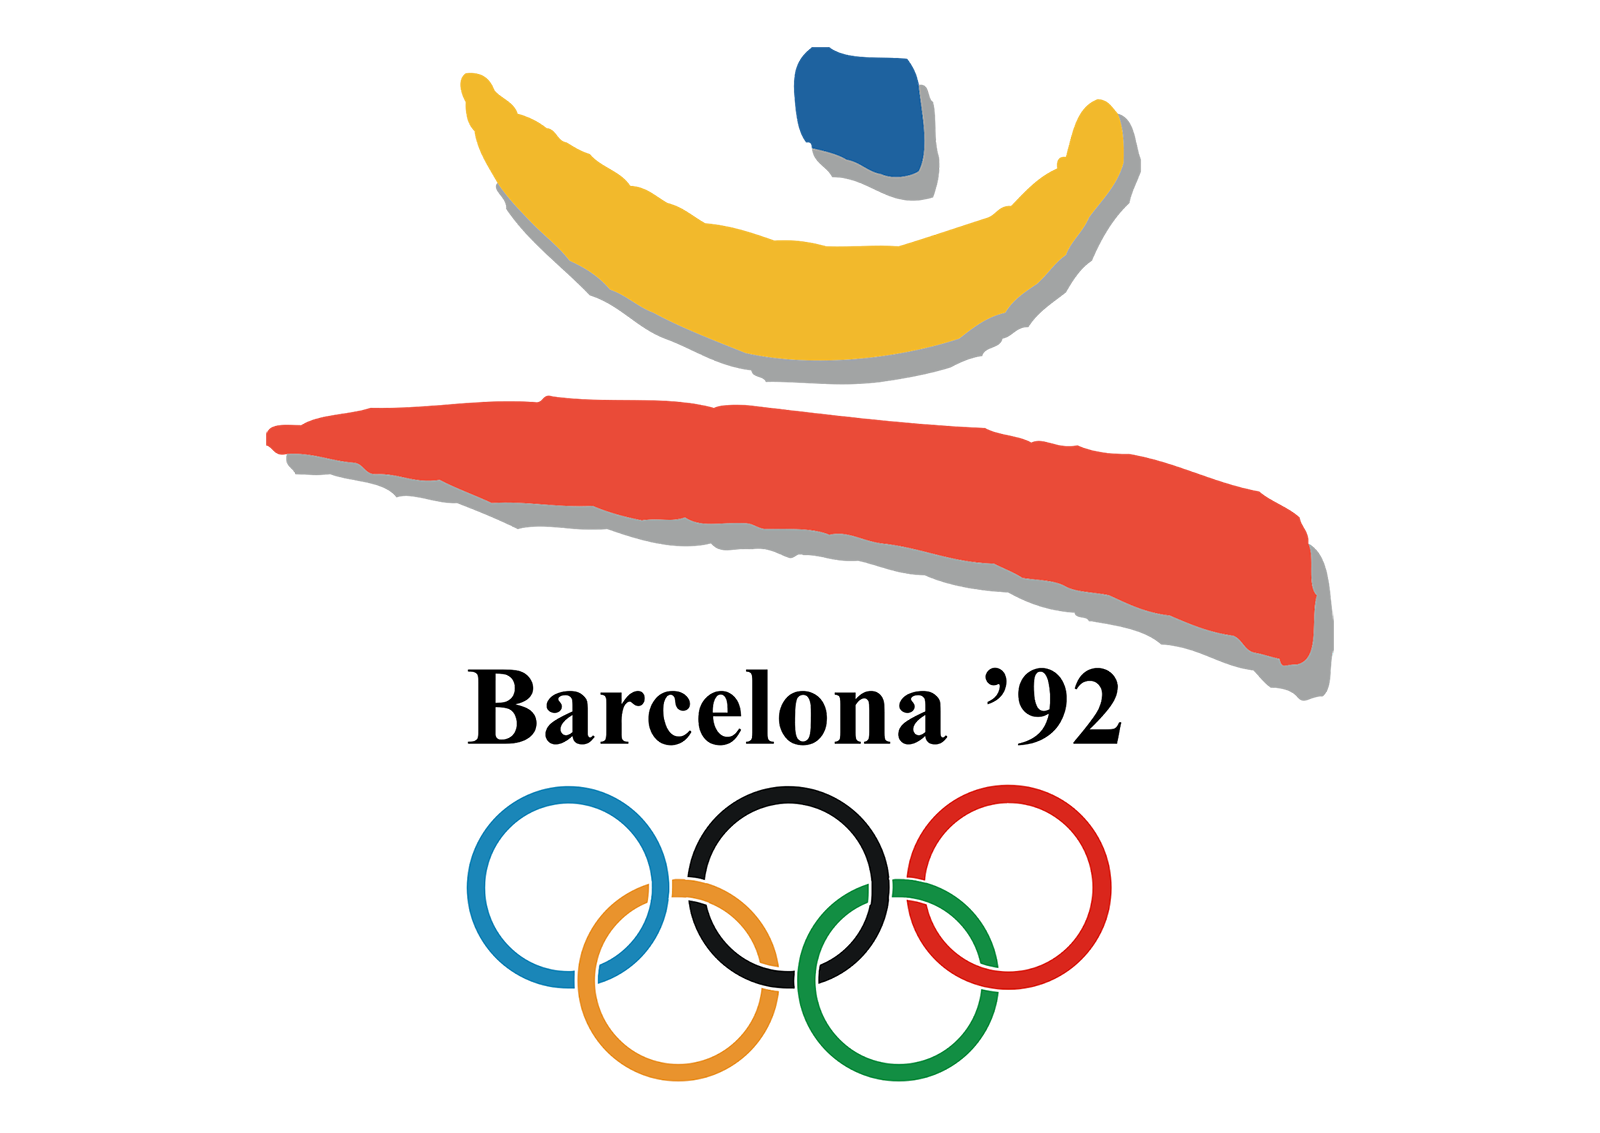 45 olympic logos and symbols from 1924 to 2022 colorlib barcelona summer olympics 1992 biocorpaavc Images